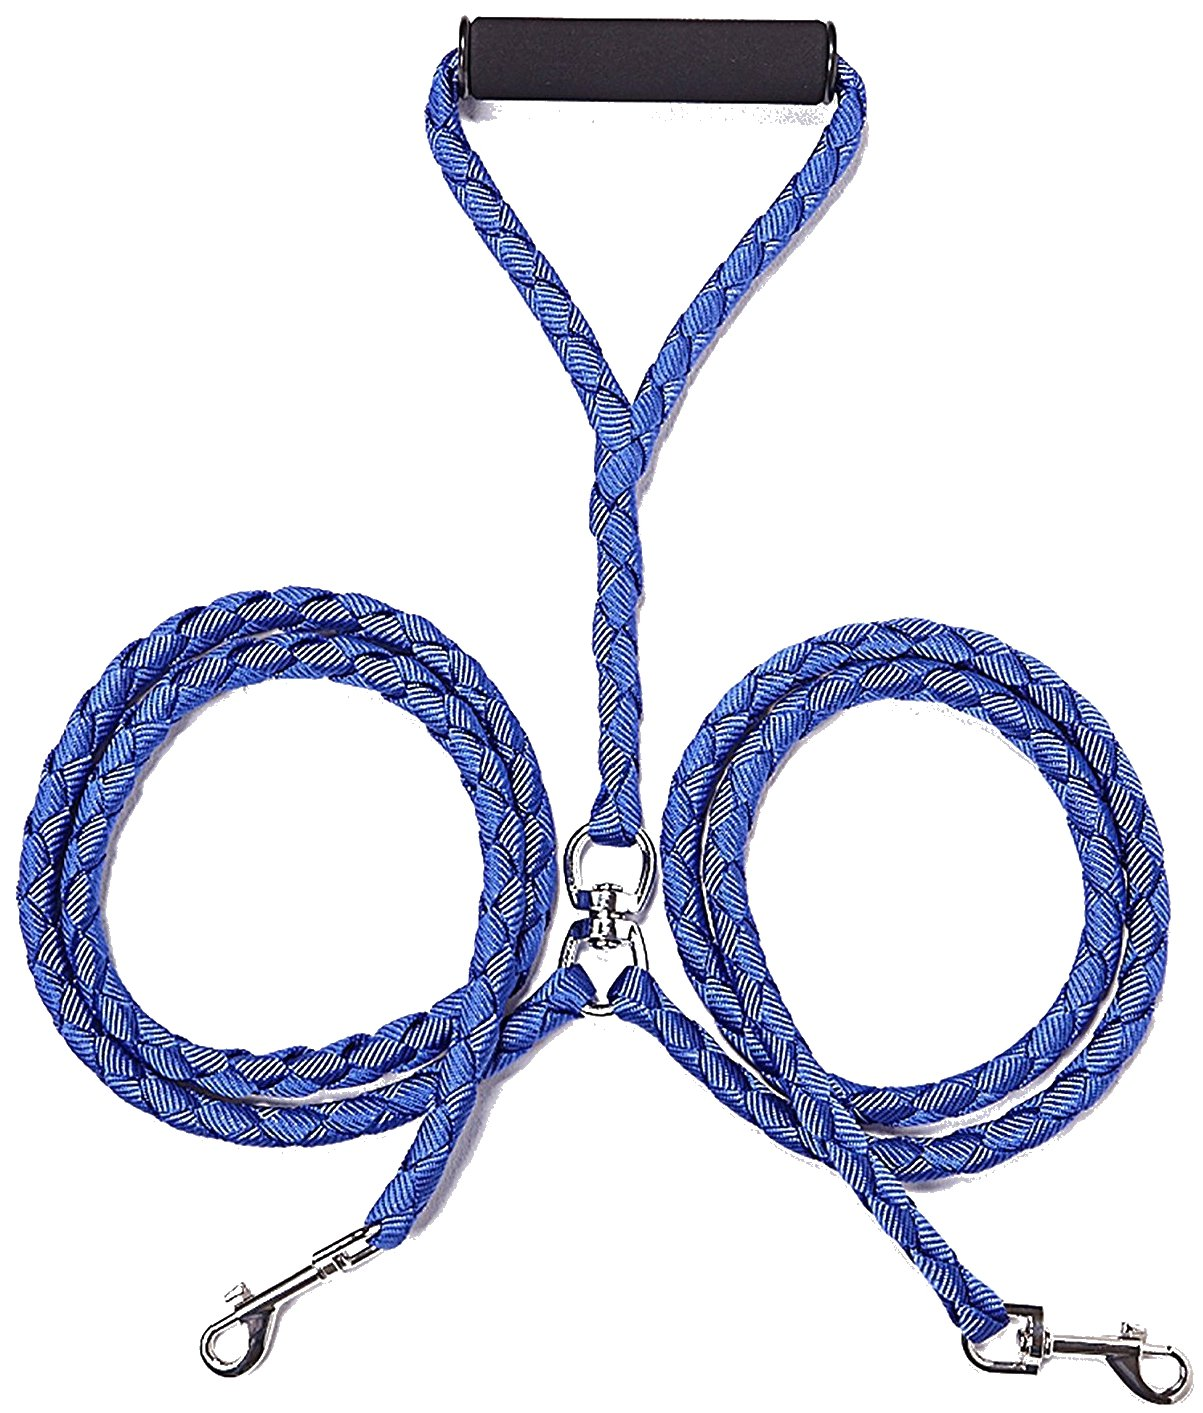 EXPAWLORER Double Dog Leash No-Tangle Dual Leash for Two Dogs Blue by EXPAWLORER